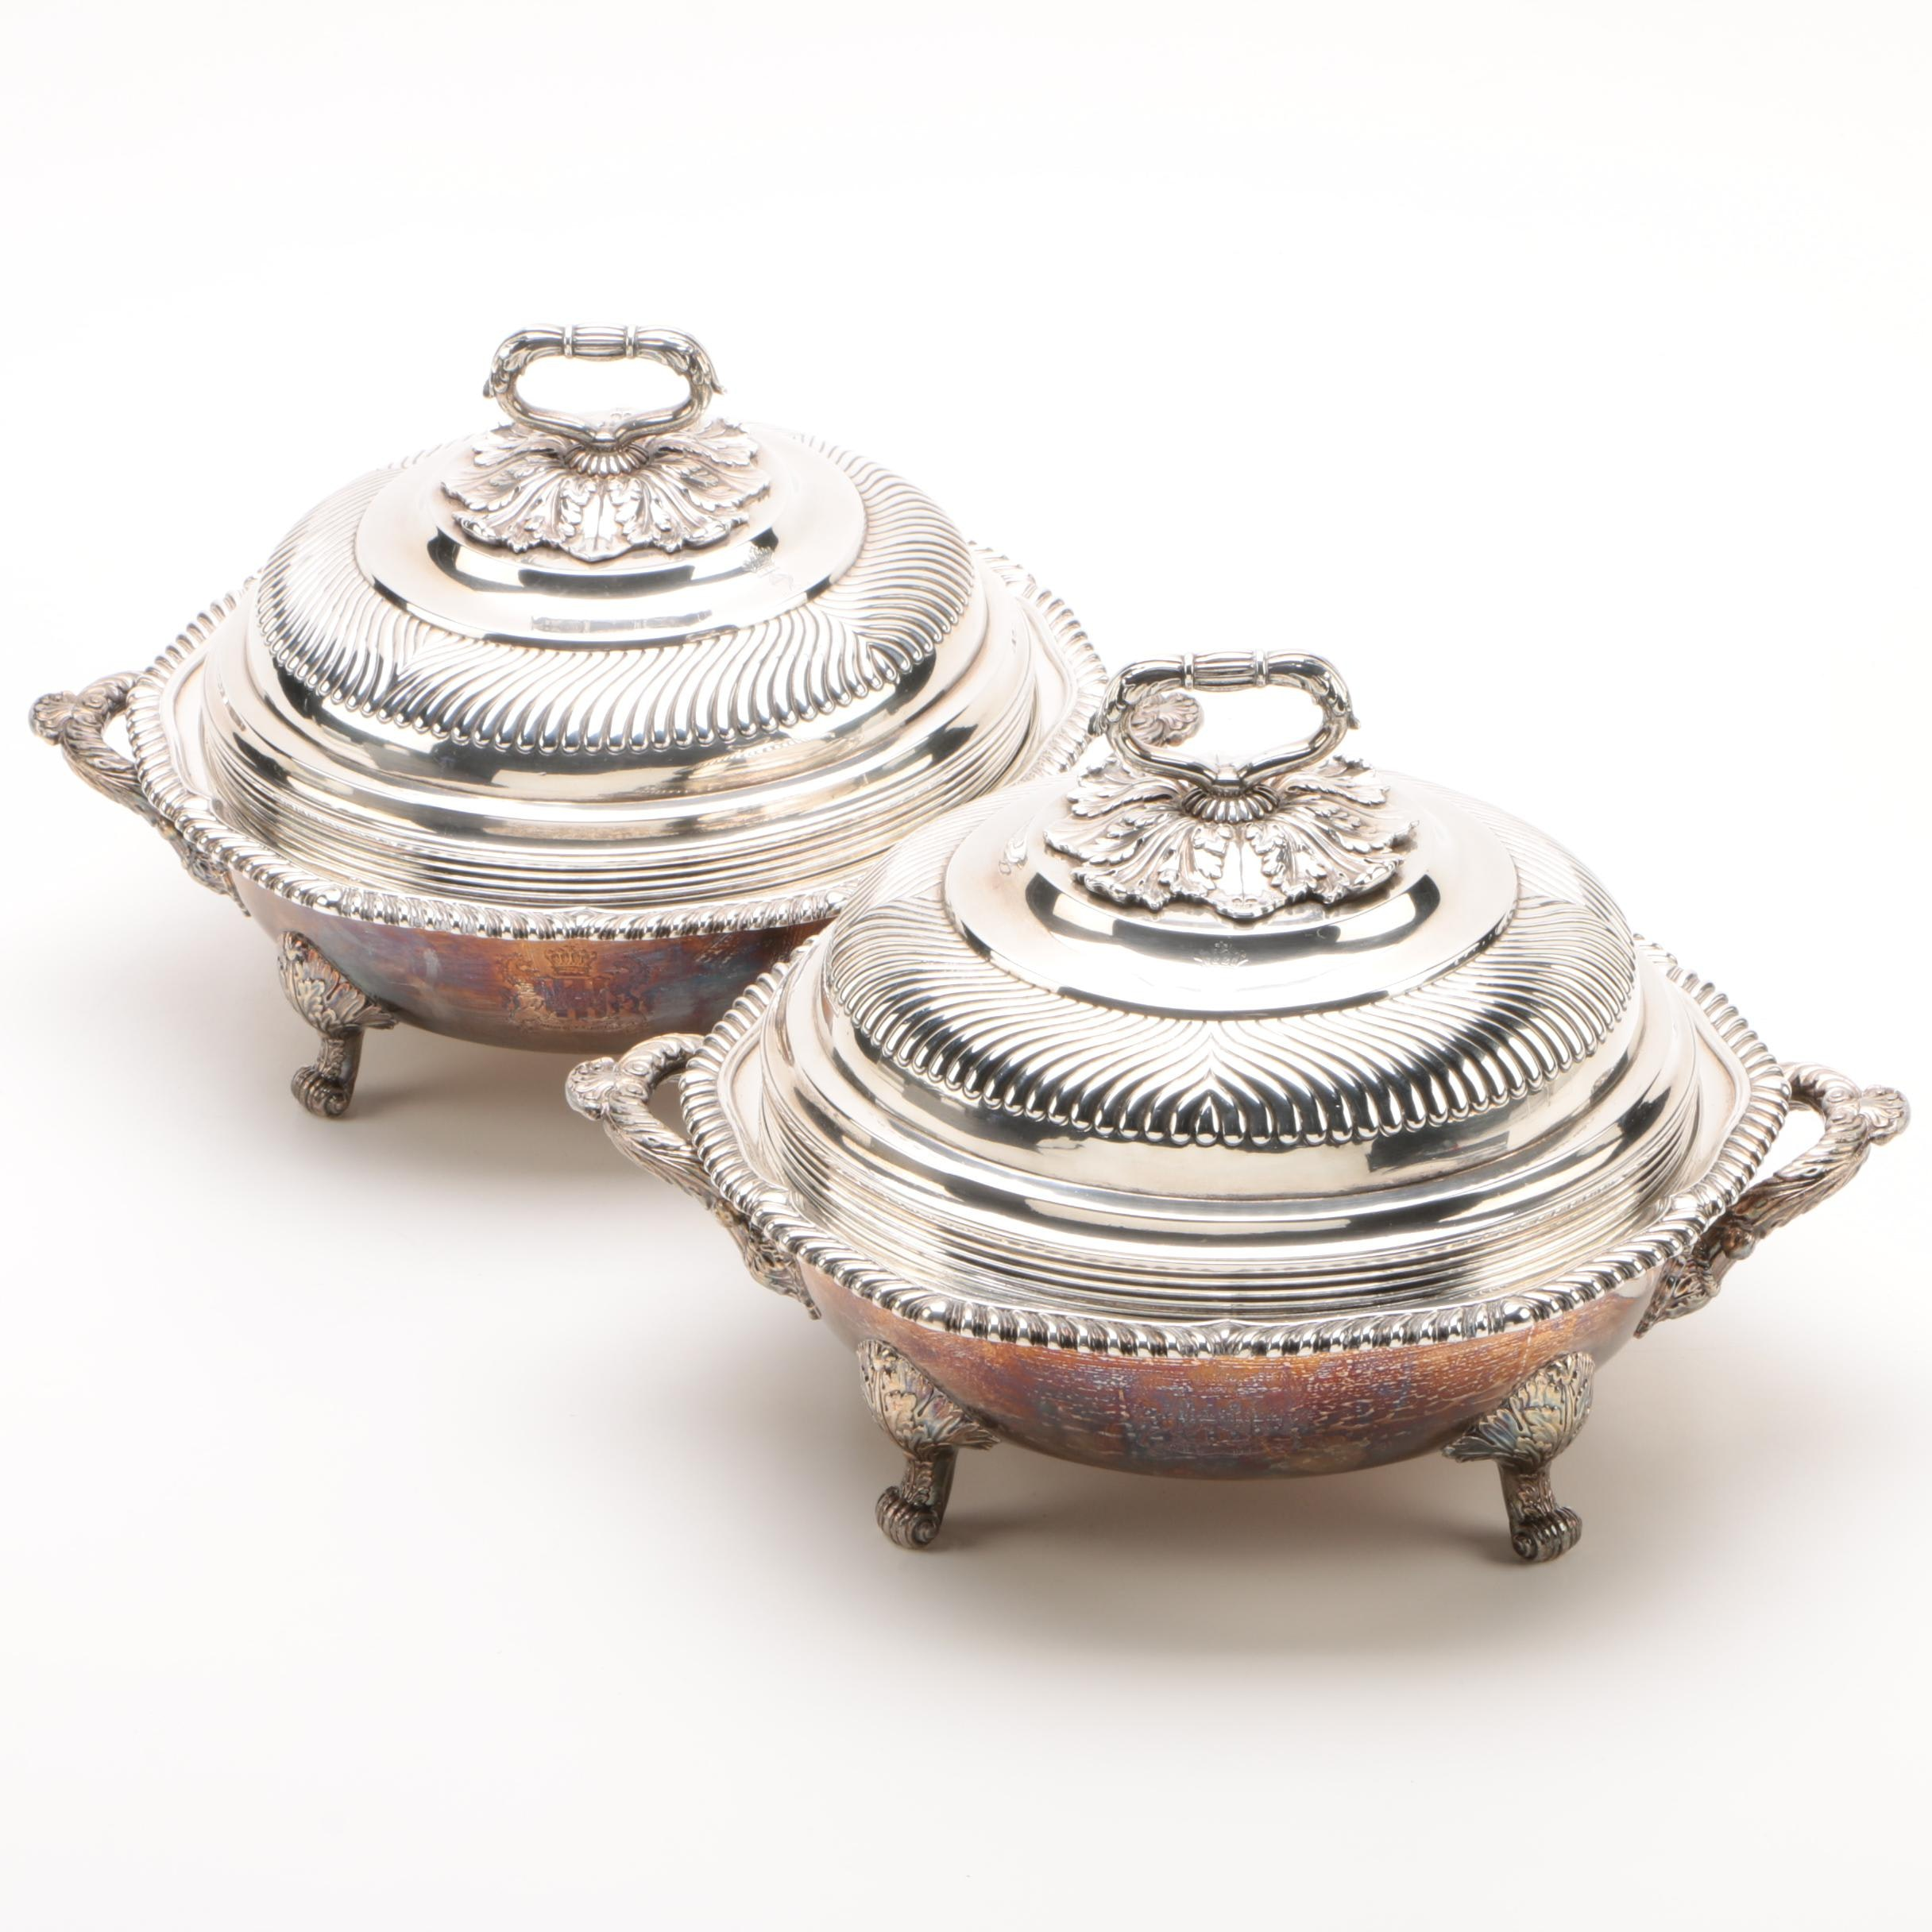 John Houle Sterling-Plated Regency Inspired Chafing Dishes, 1811